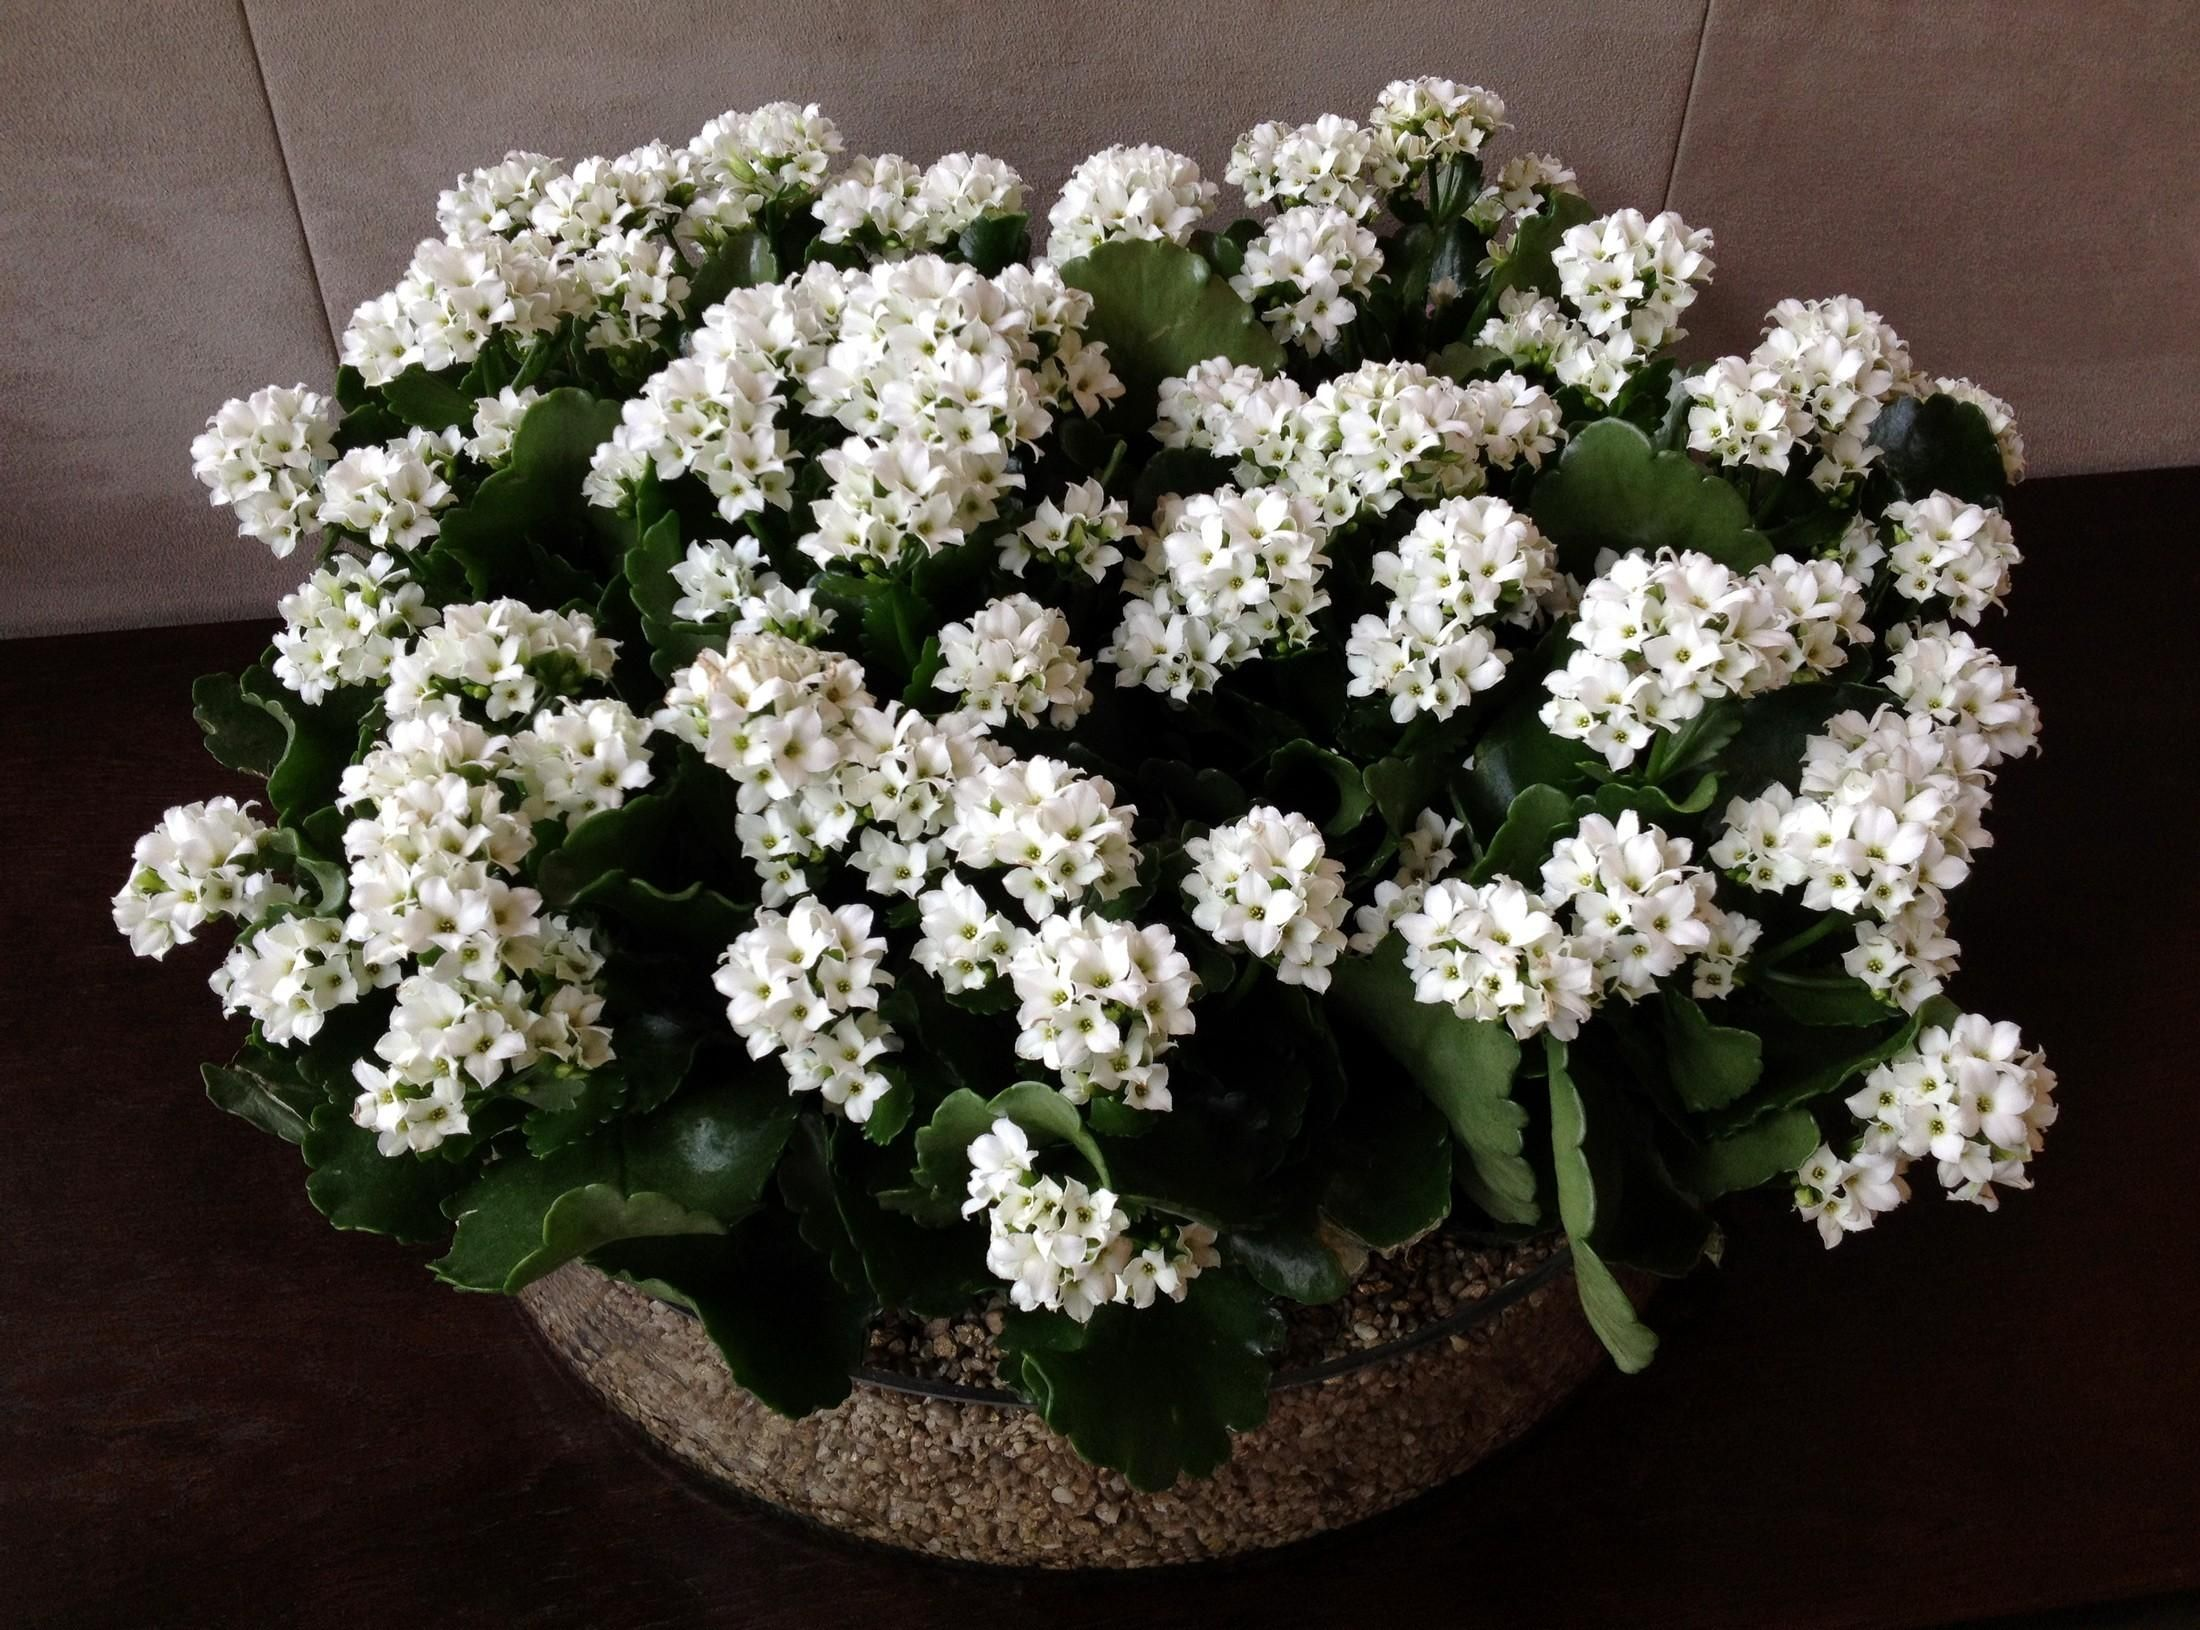 Indoor Plants And Flowers 2200x1630 Wallpaper Kalanchoe Flowers White Indoor